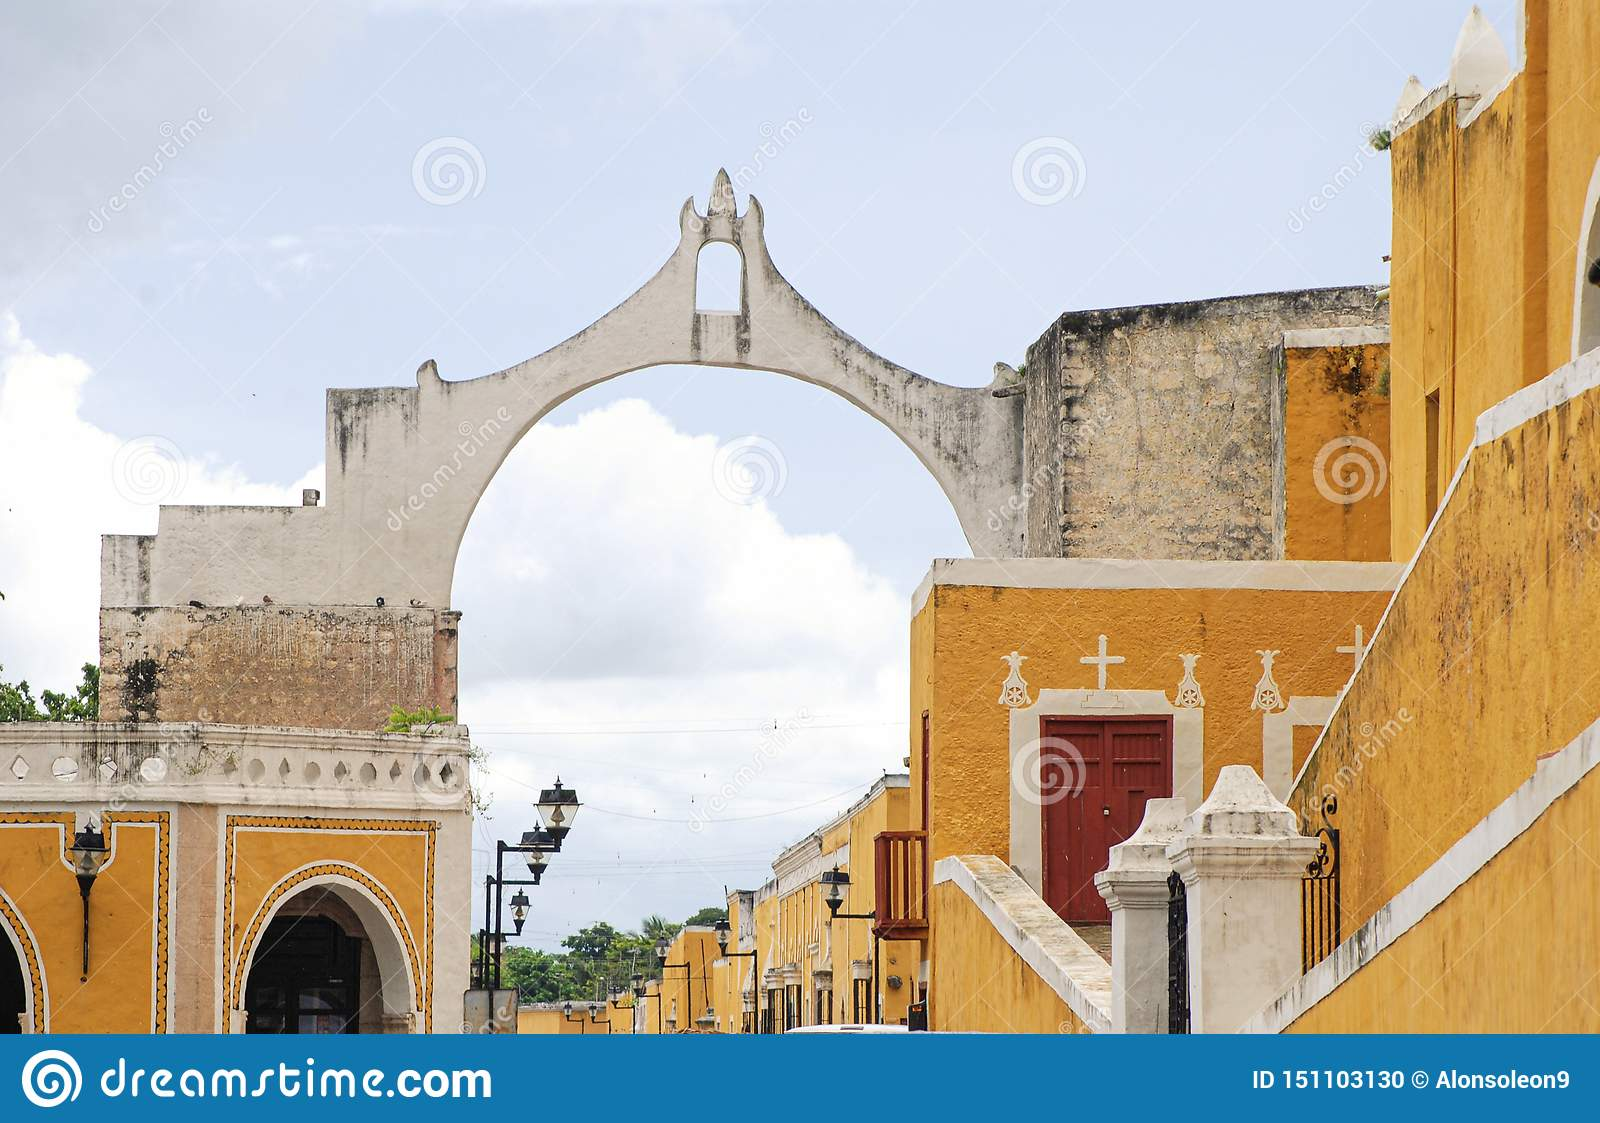 Street view of Izamal the yellow town in Yucatan Mexico.